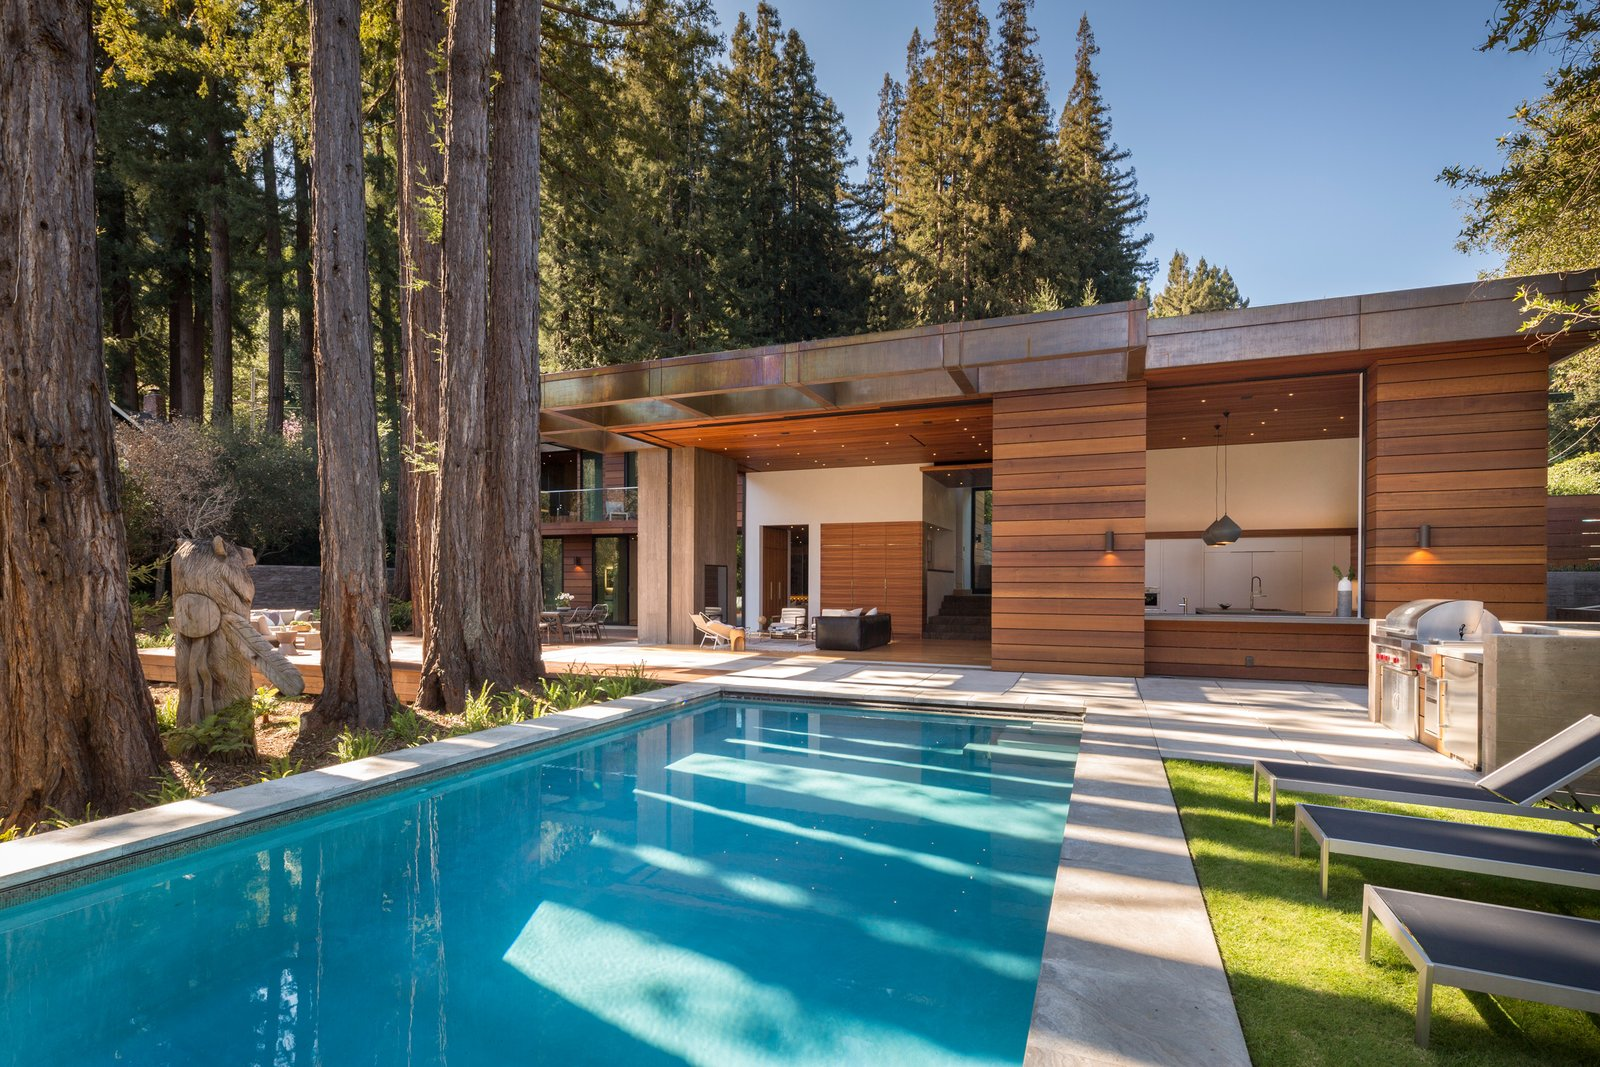 Indoor outdoor flow with disappearing walls of glass  Ross Modern